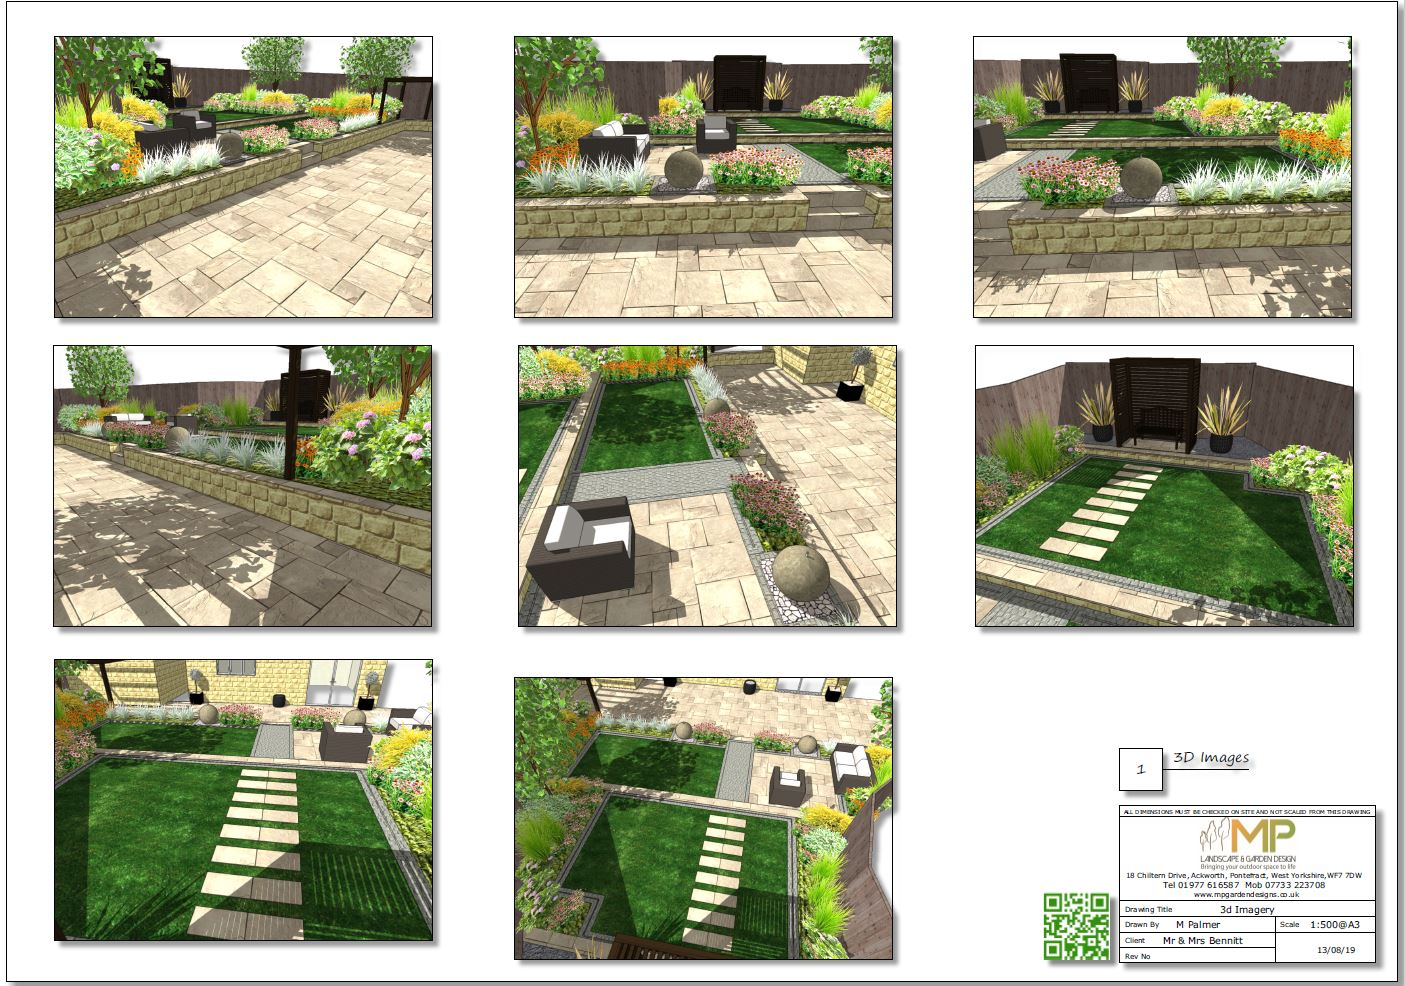 3-Garden layout 3D images for a new bild property in Wakefield